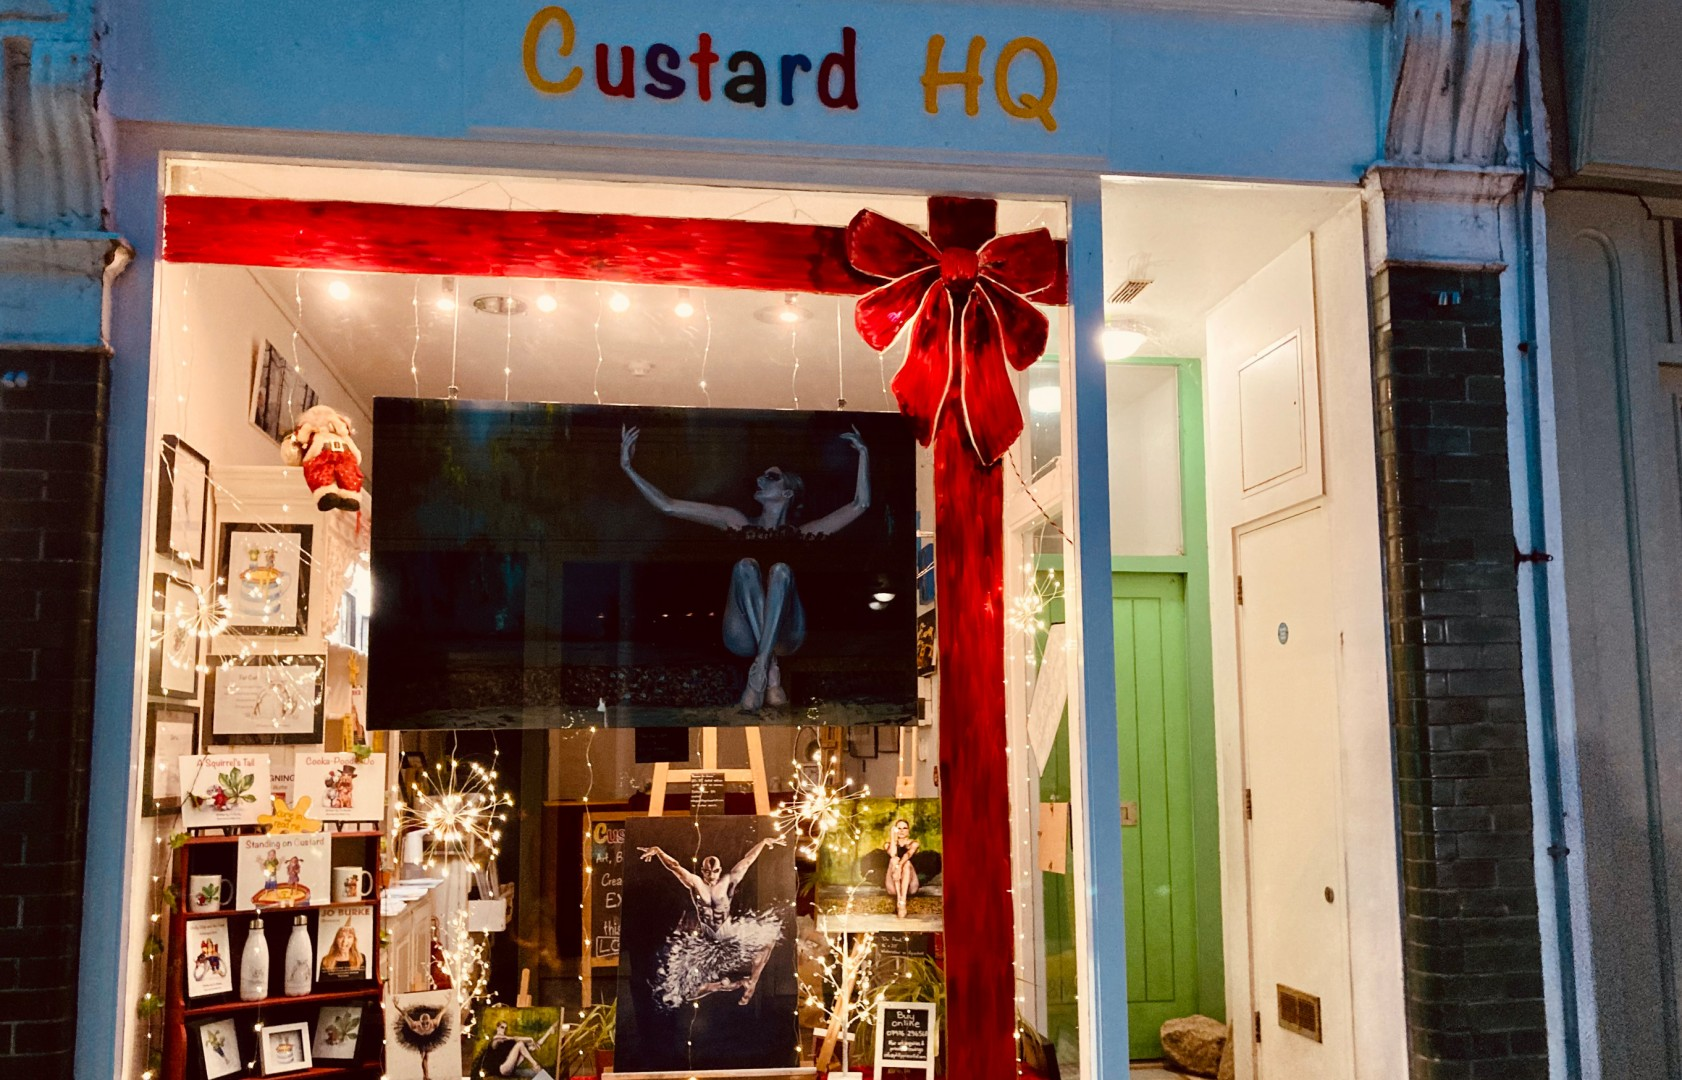 Custard HQ on The Old High Street